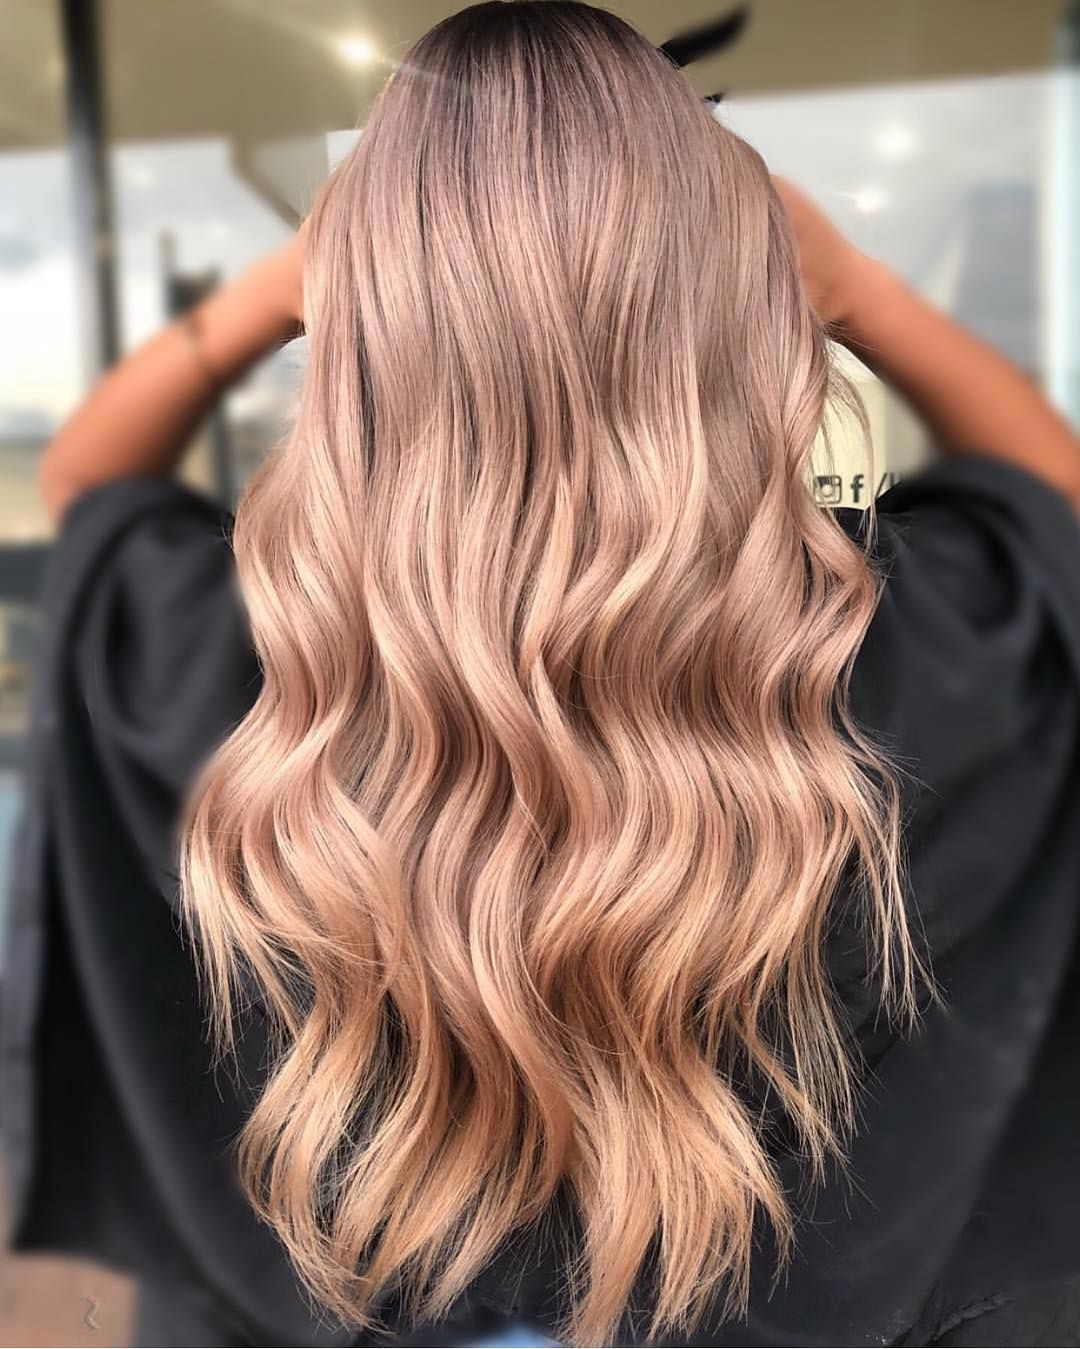 Mane Addicts On Instagram Blush Blondes Have More Fun Leave A If You Re Obsessed With This Hair Color Chris Styles Ma Hair Hair Color Hair Styles